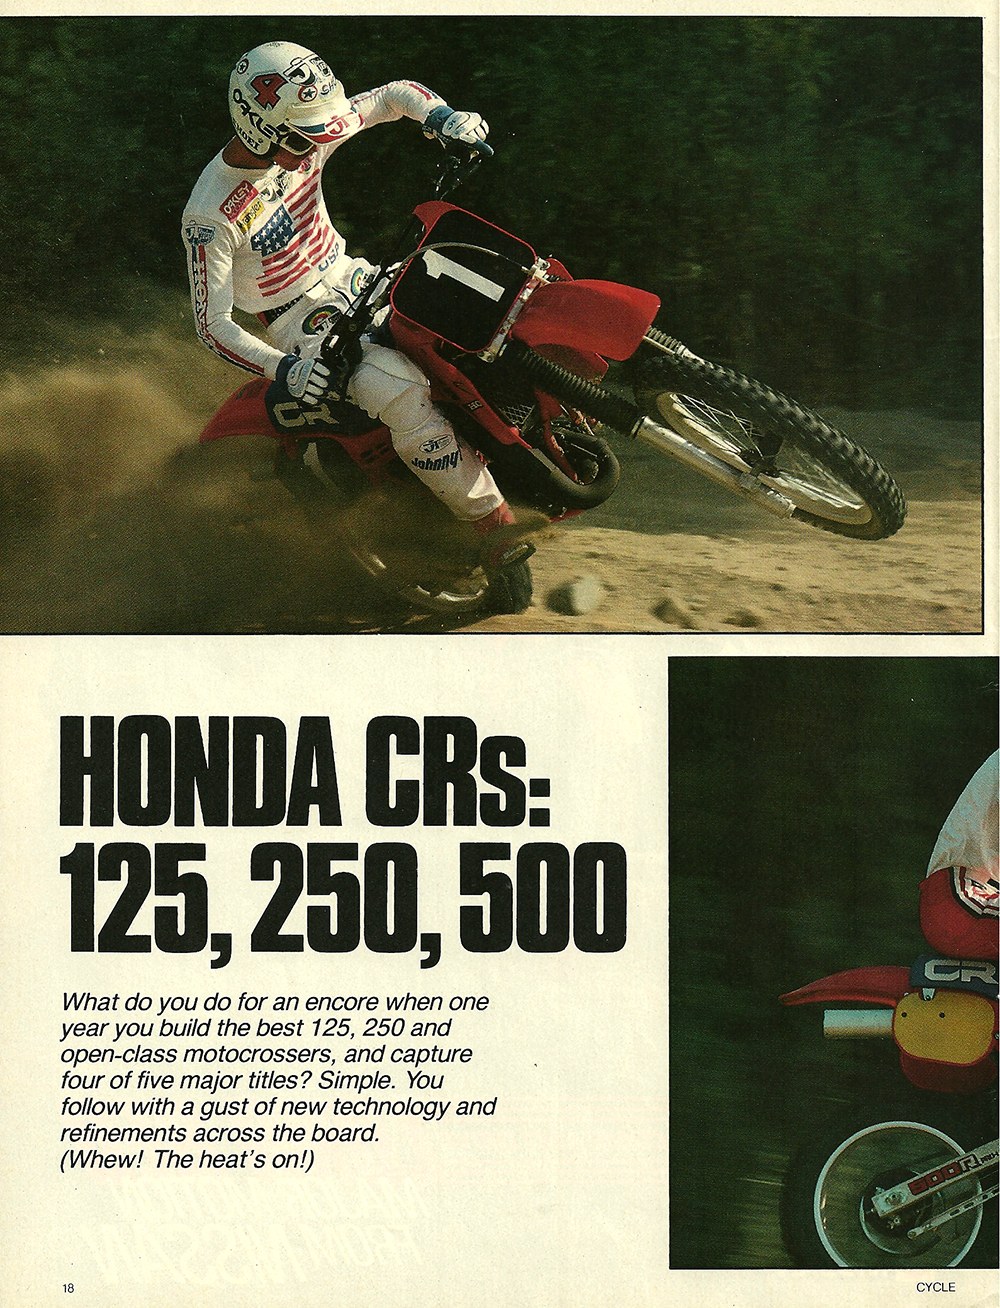 1984 Honda CR 125 250 500 road test 01.jpg